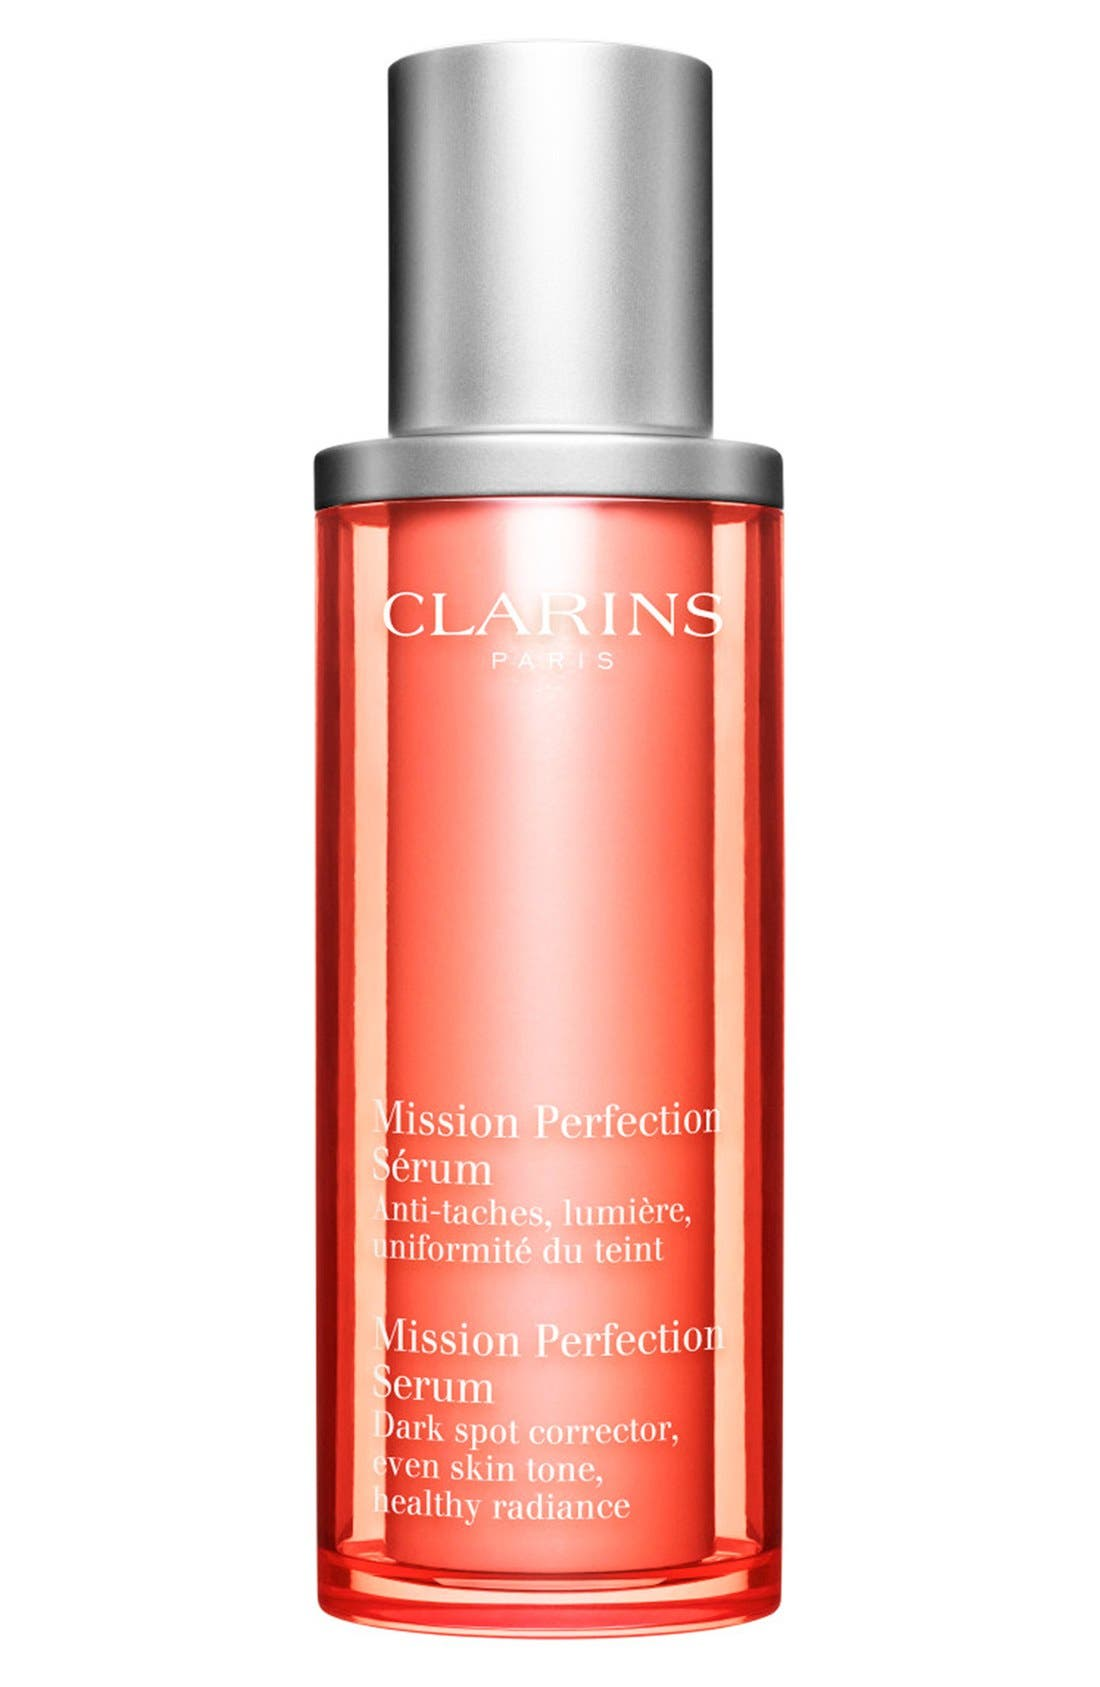 Clarins Large Mission Perfection Serum